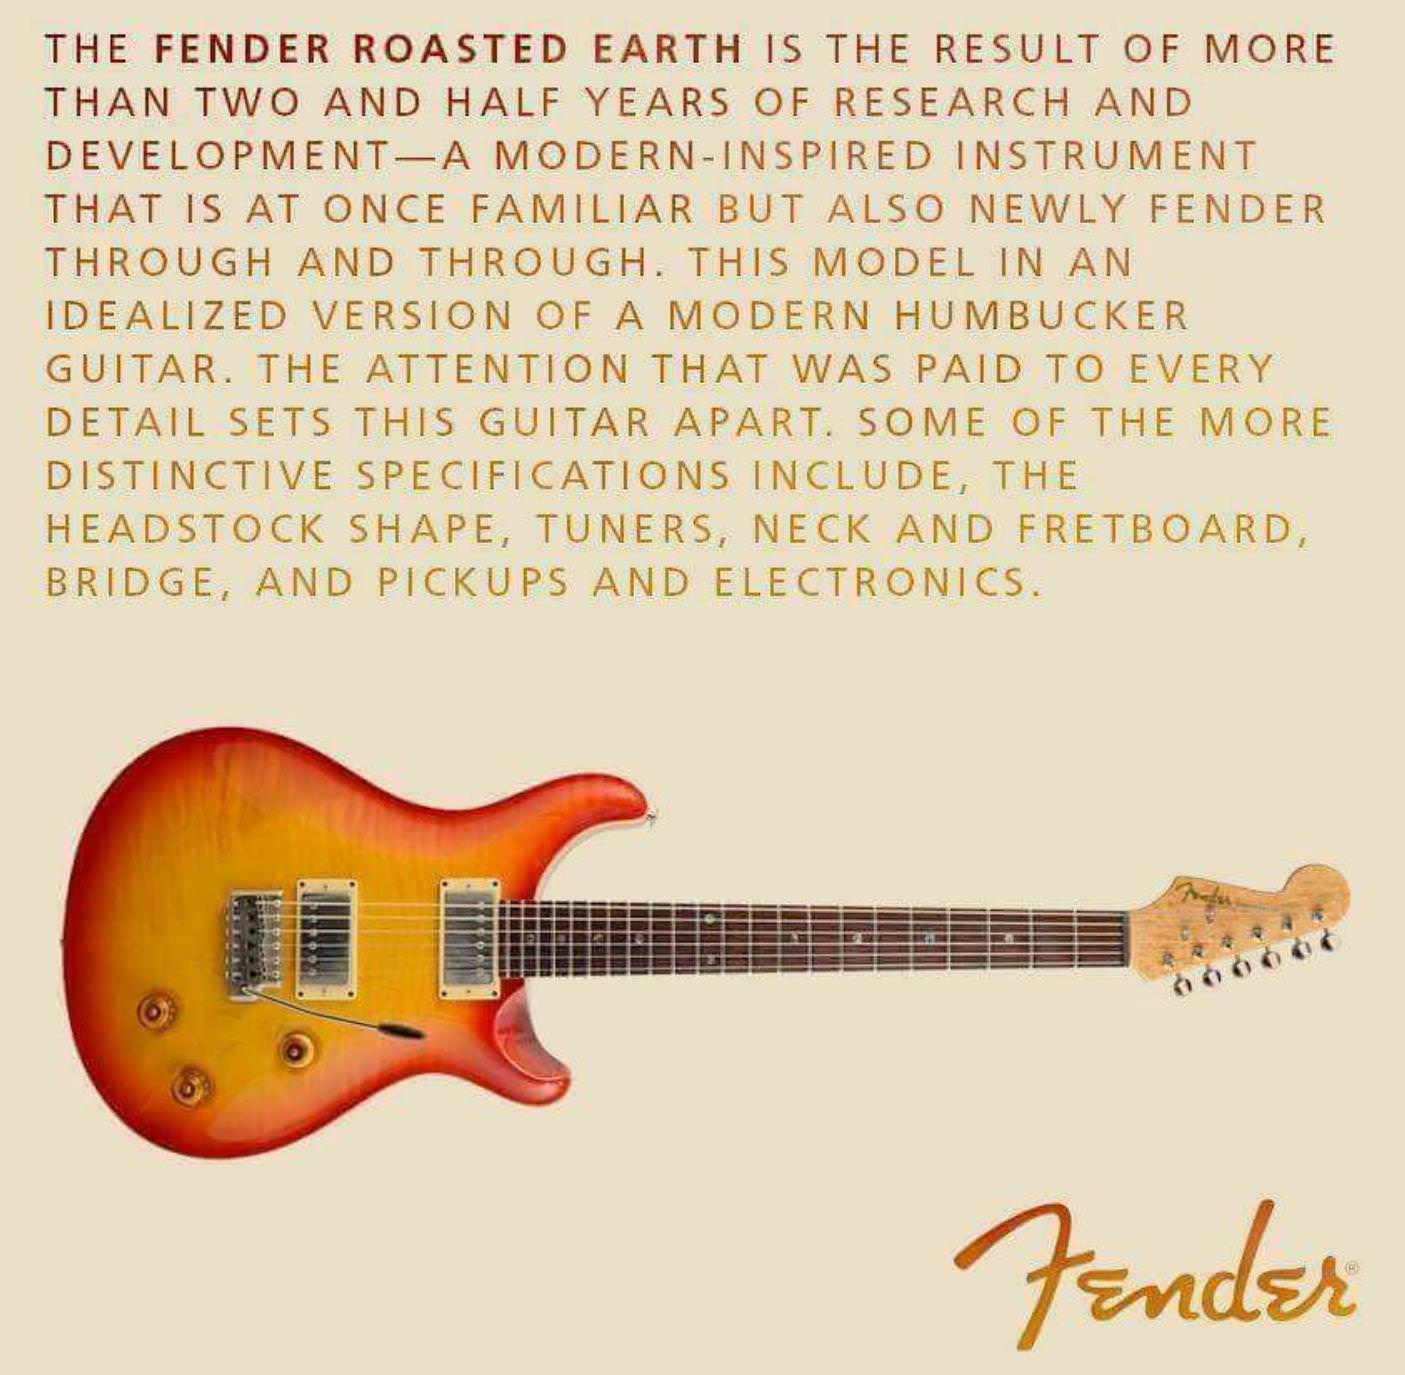 Fender Roasted Earth